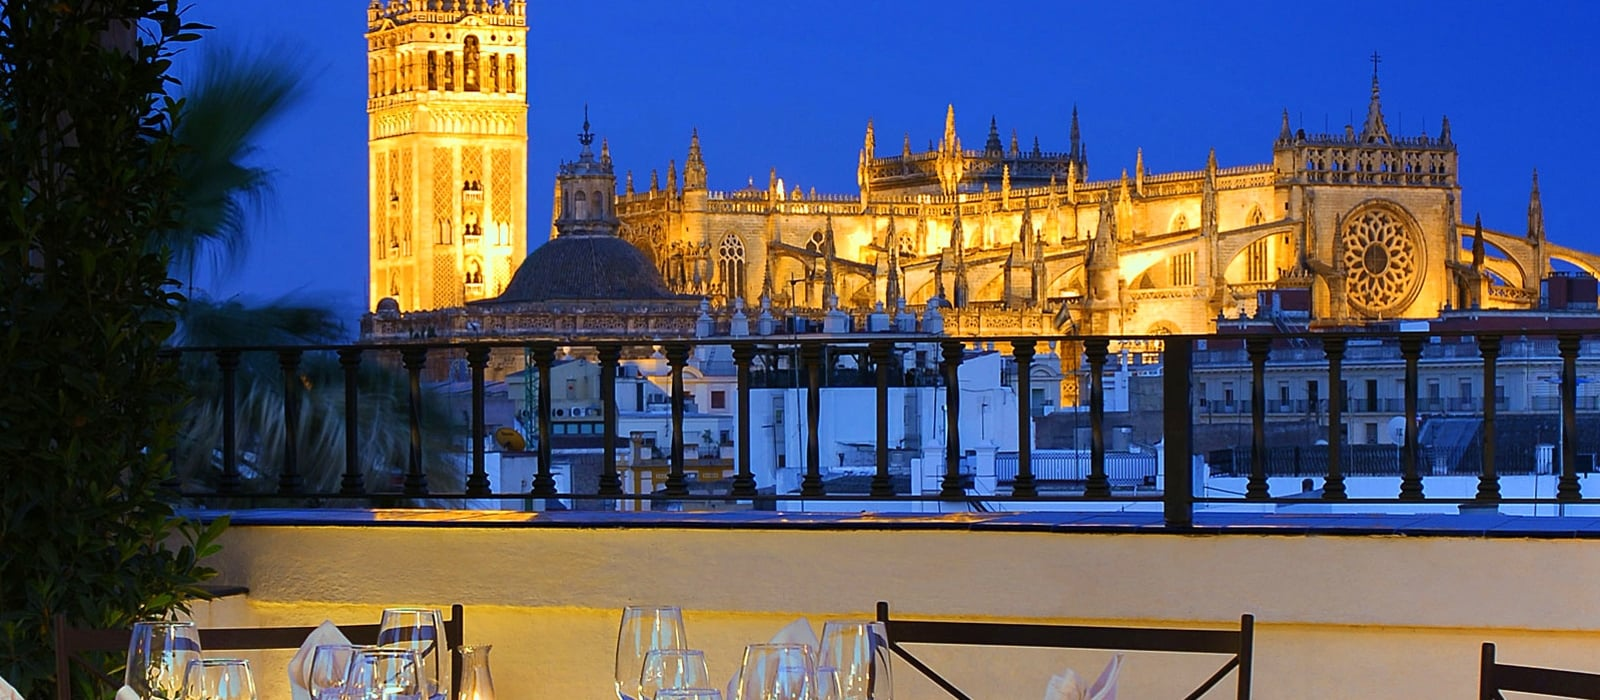 Promotions Hotel Vincci Sevilla La Rábida - Stay 3 nights and save! -15%